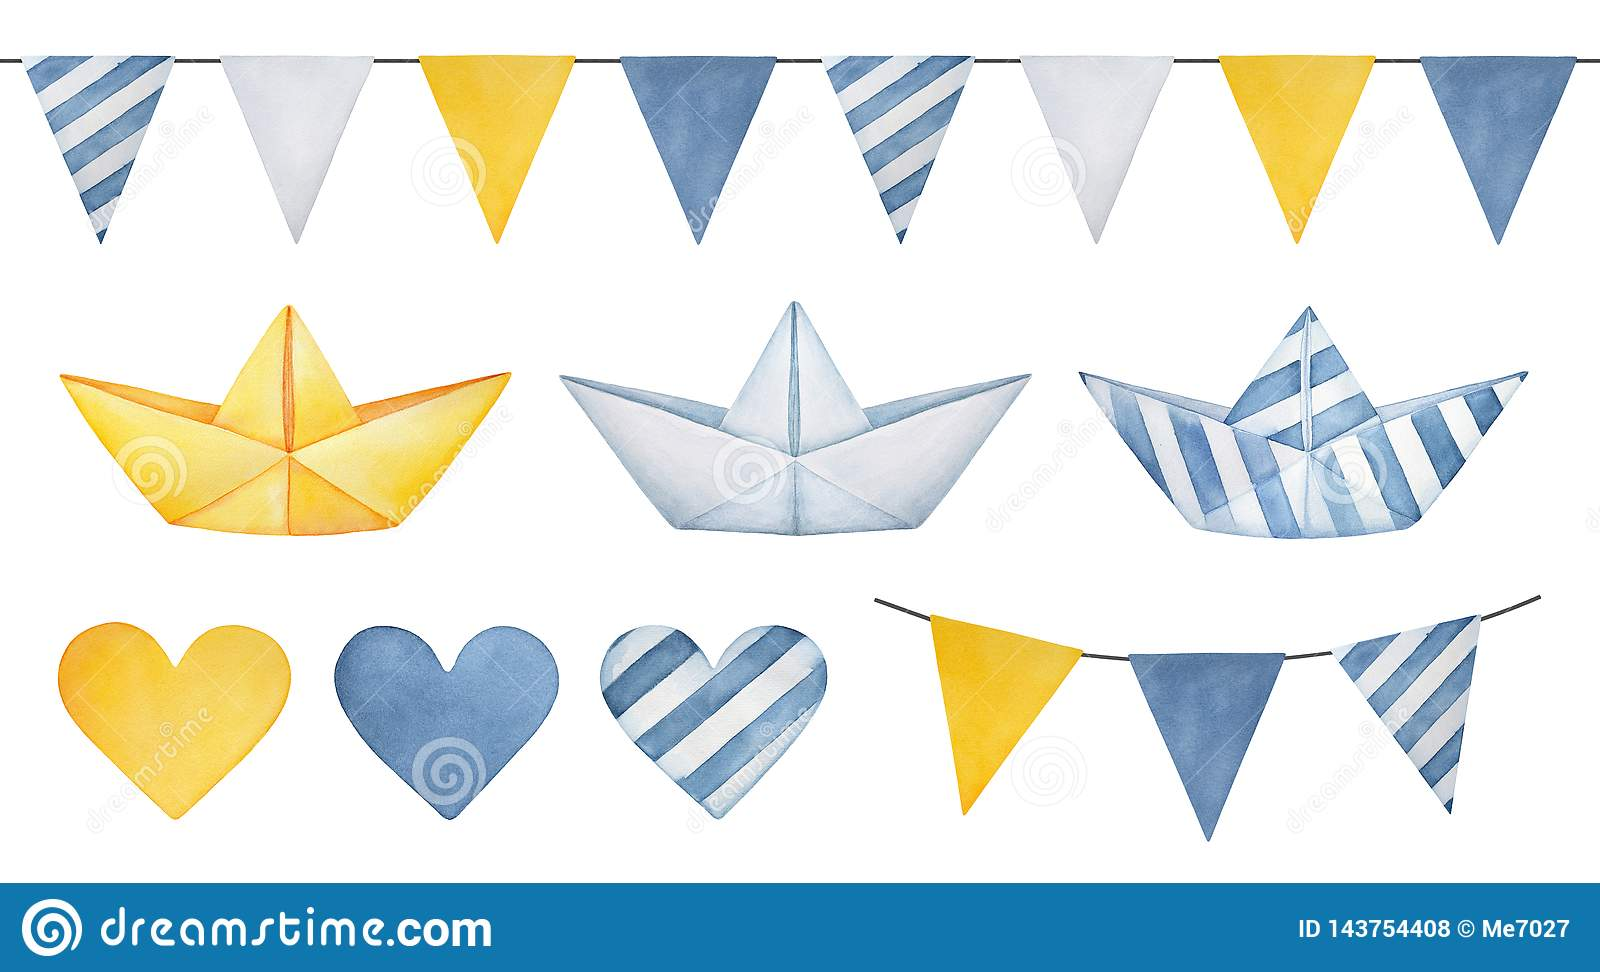 Large illustration collection of pennant banner garland, cute paper boats, various hearts and triangle flags.